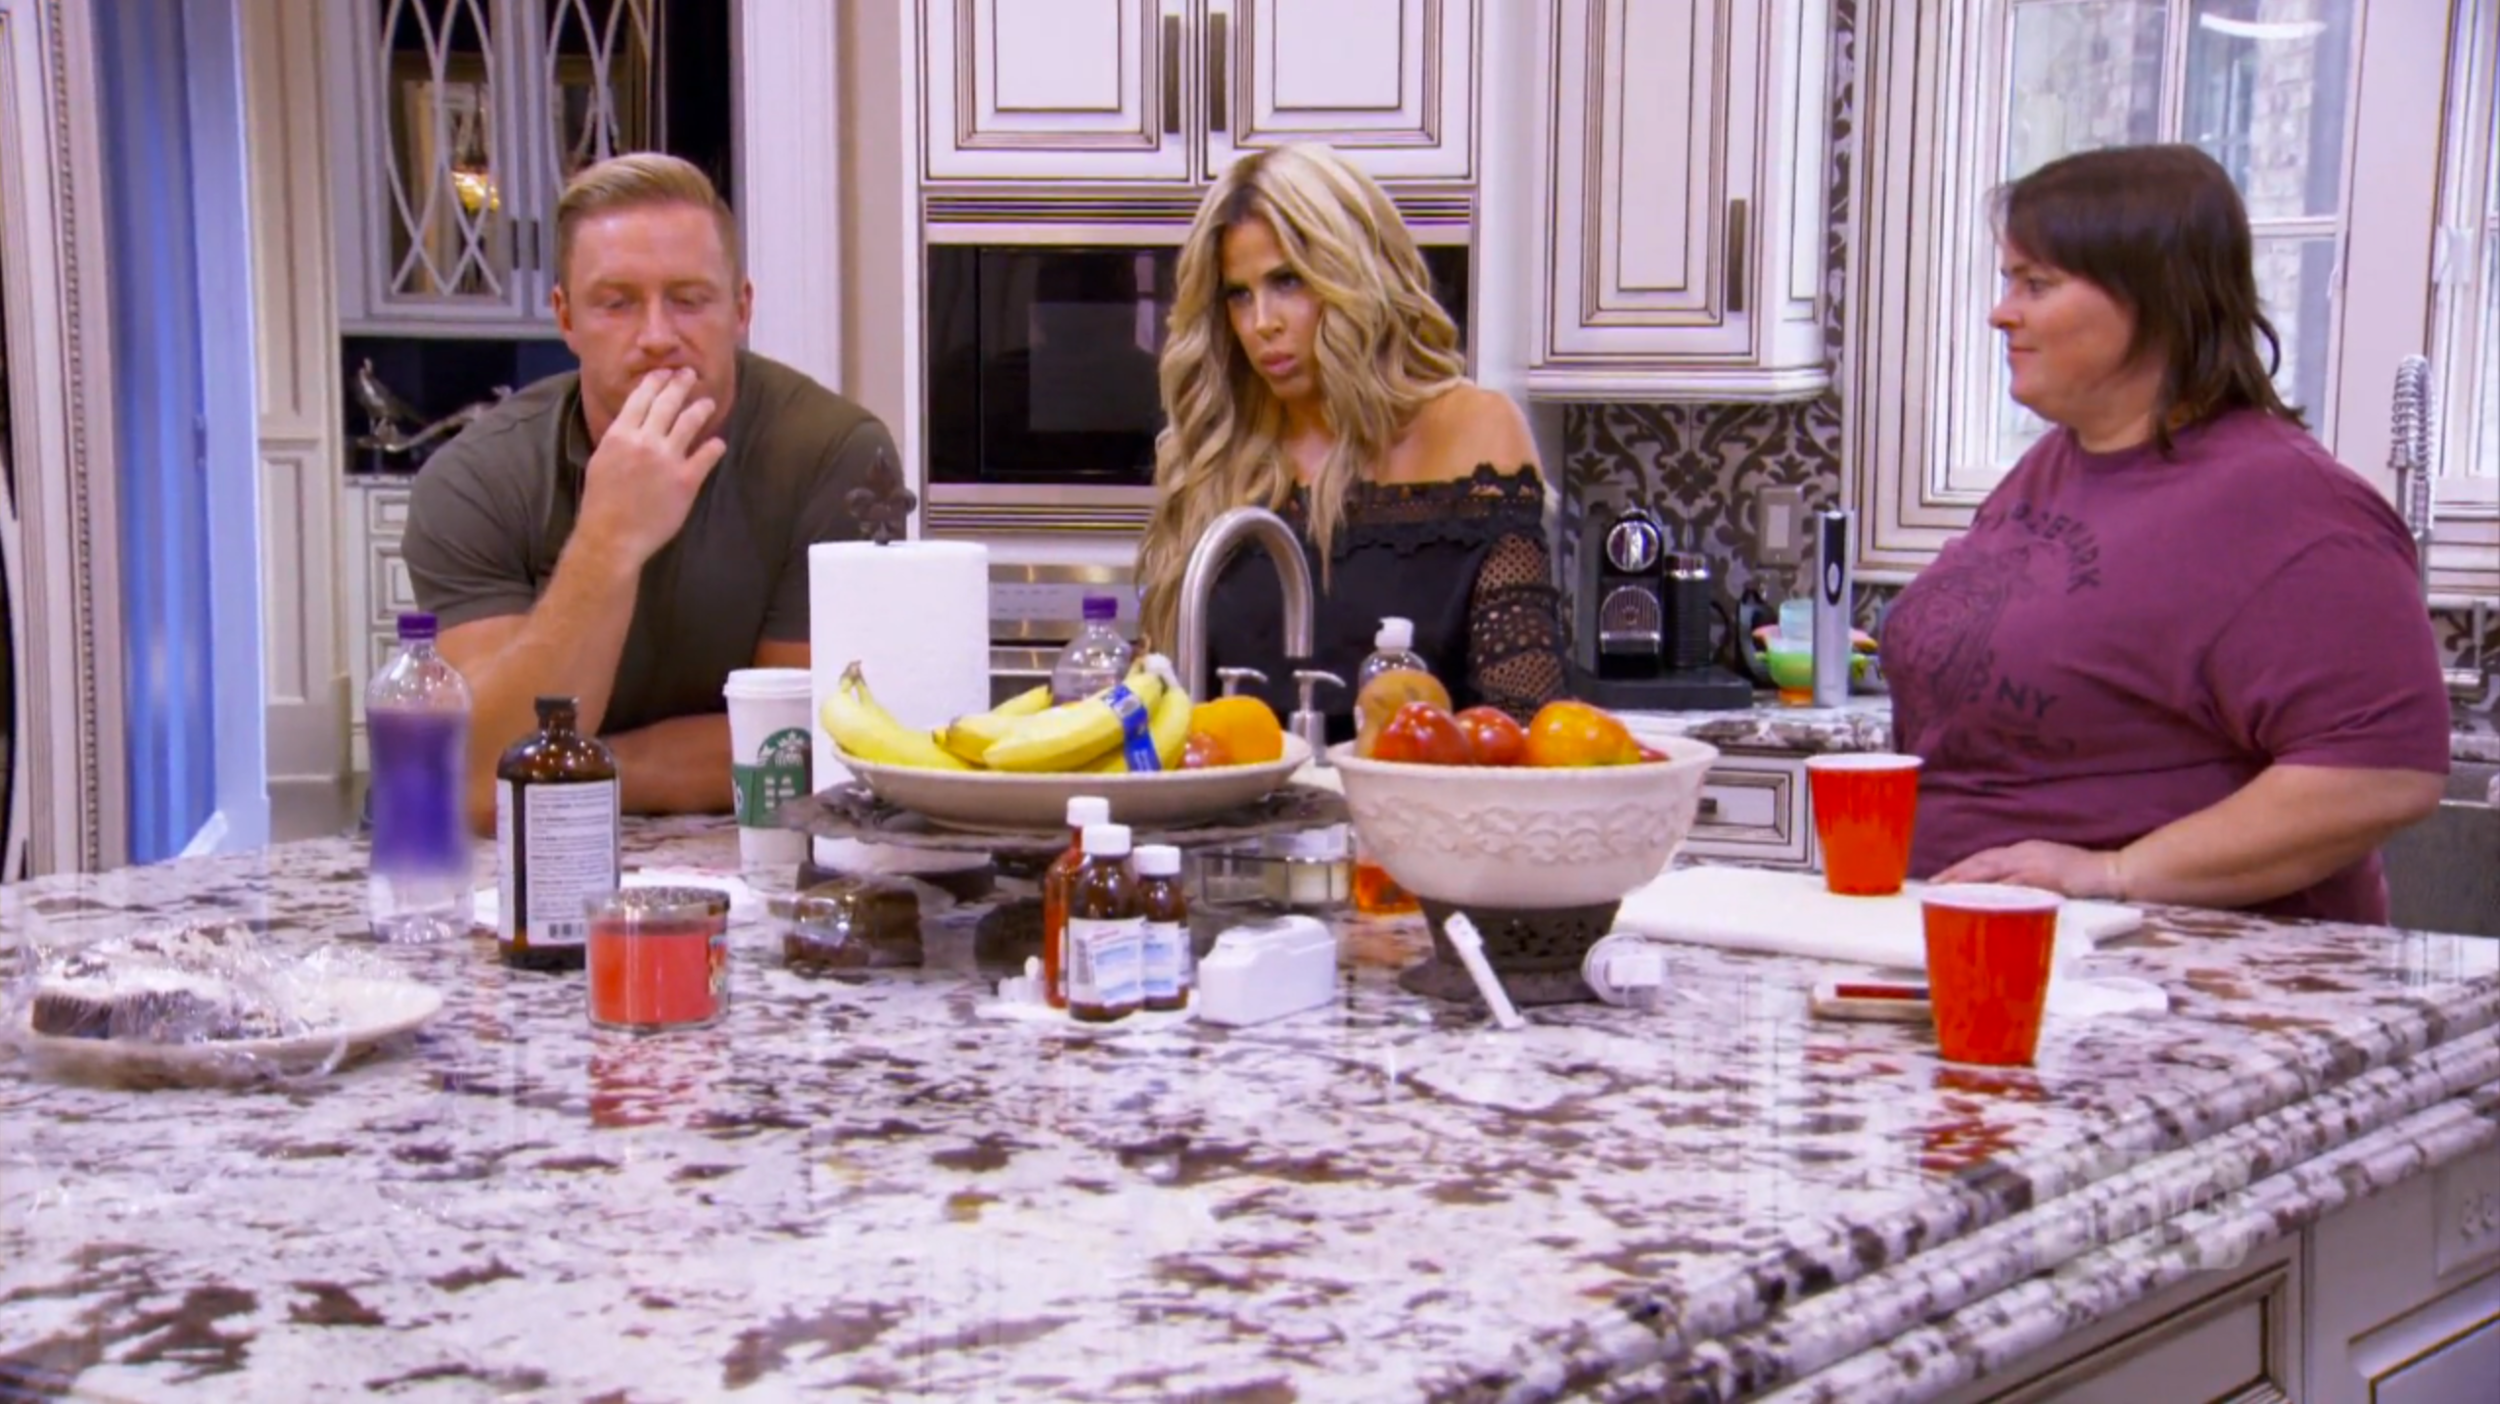 kim-zolciak-biermann-kroy